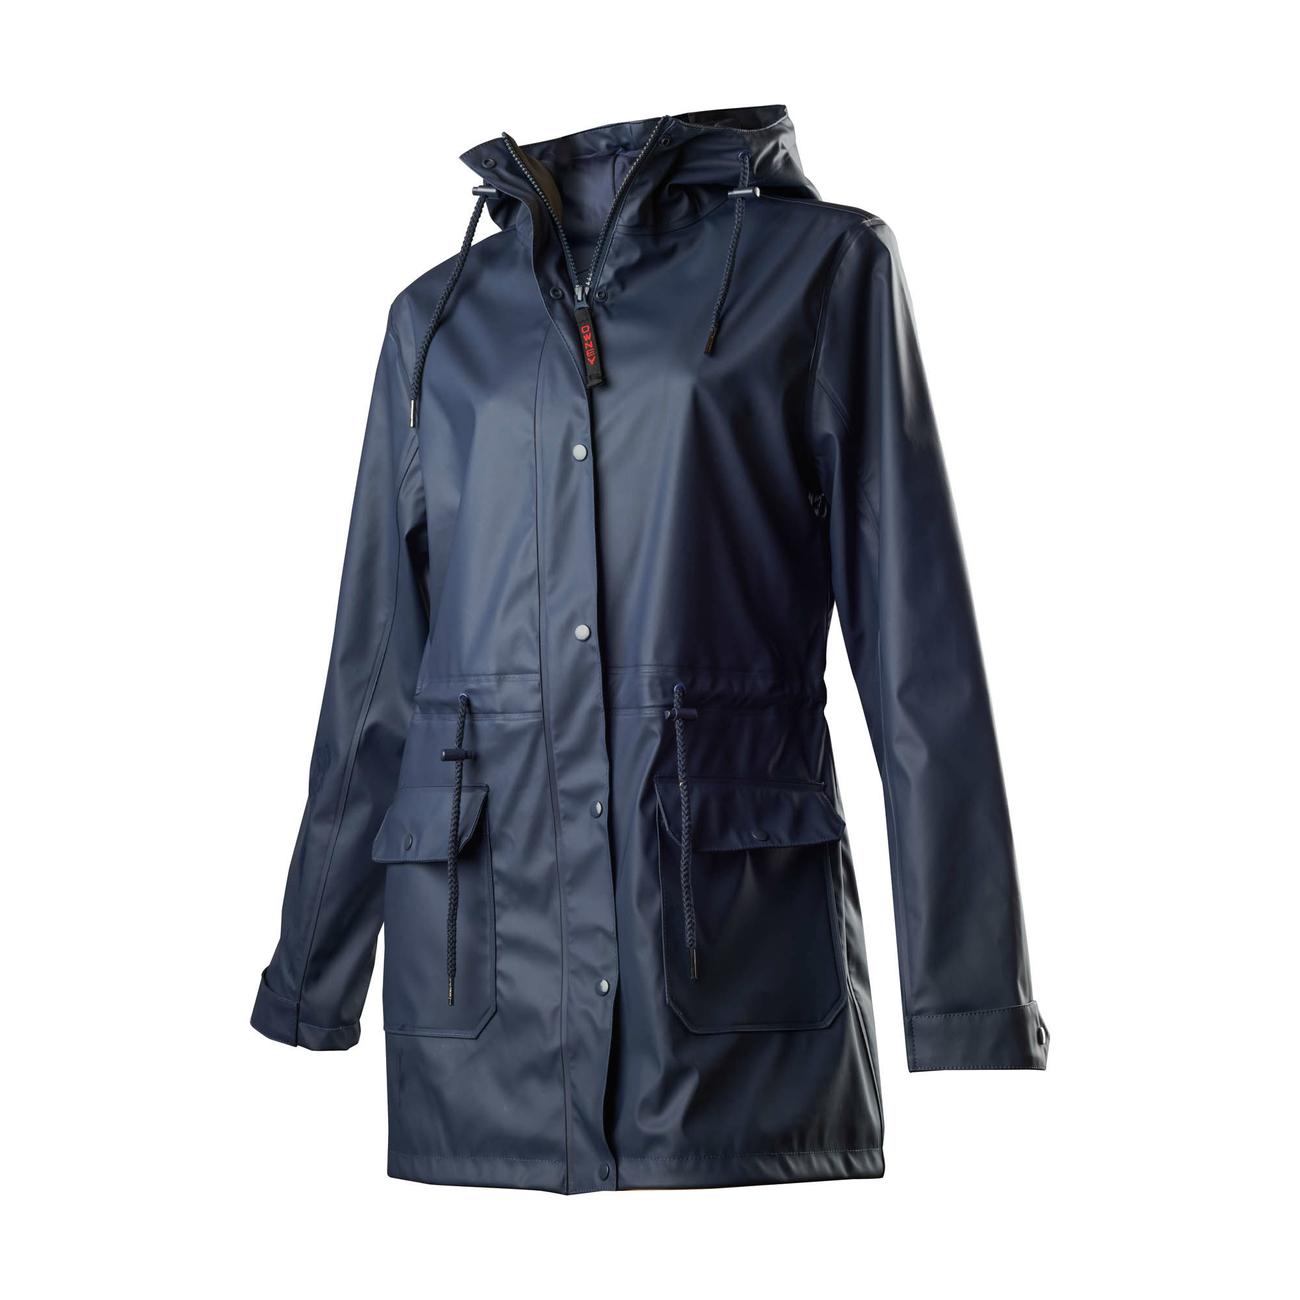 OWNEY Damen-Regenjacke Vela, XL, blau